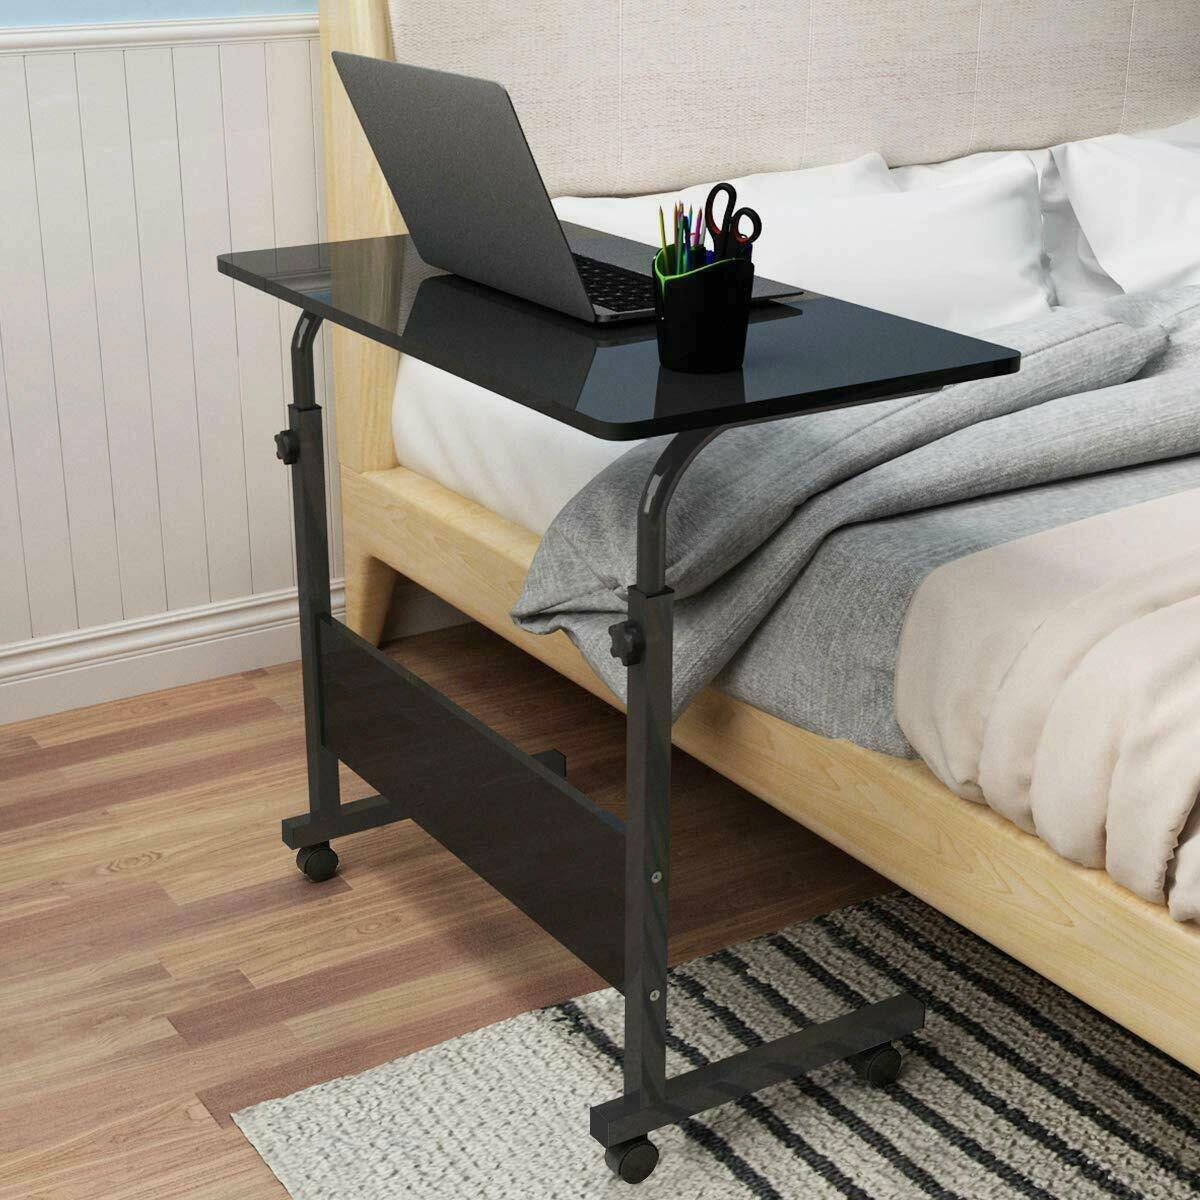 Adjustable Movable Laptop Stand Desk Portable Laptop Table Computer Desk Notebook Laptop Desk Can be Lifted Bed Side Table